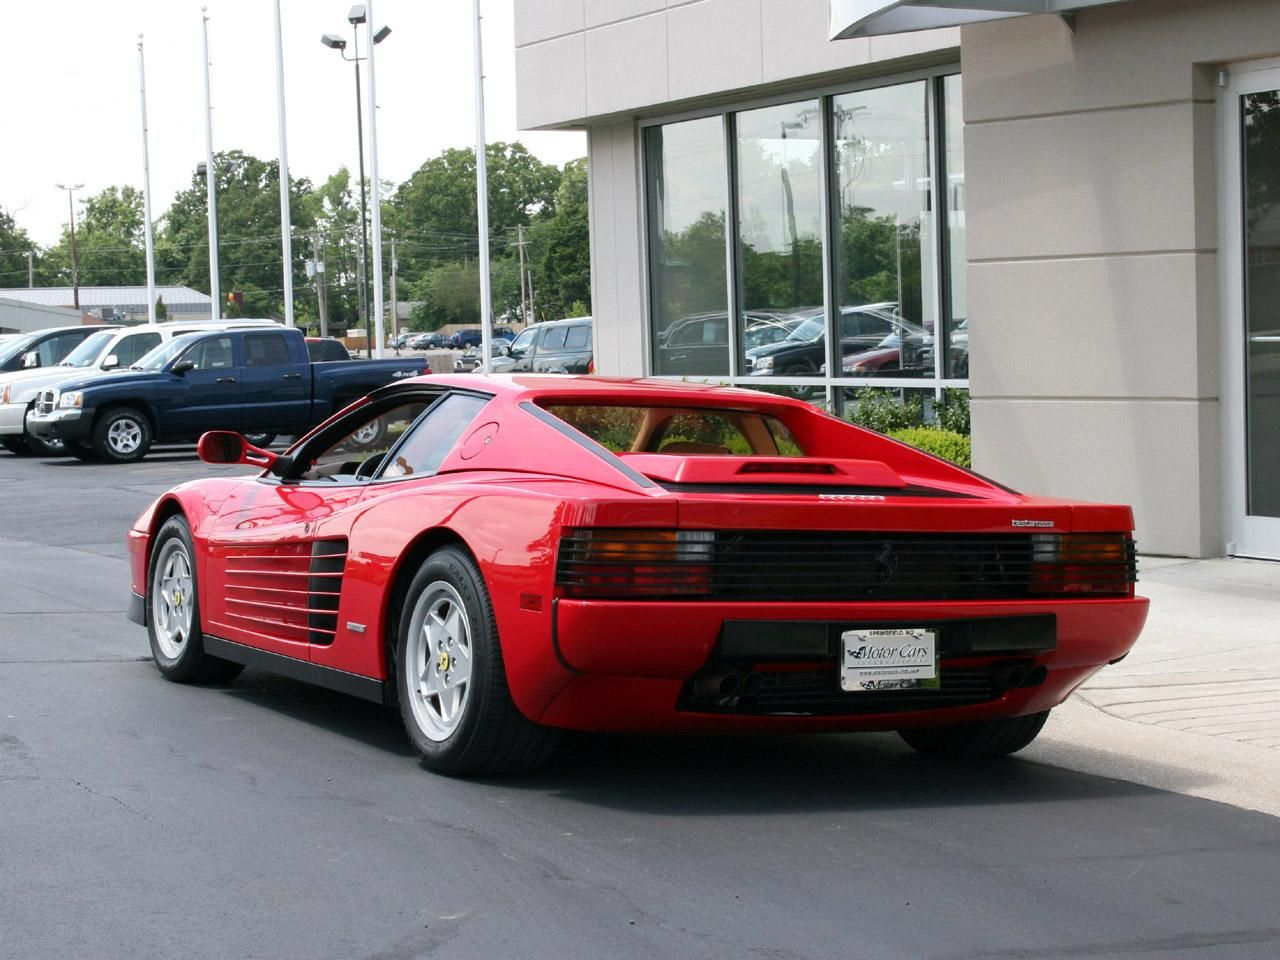 Ferrari testarossa convertible never made by ferrari themselves ferrari testarossa convertible never made by ferrari themselves but reminds me of playing outrun as a child cars pinterest ferrari convertible and vanachro Gallery